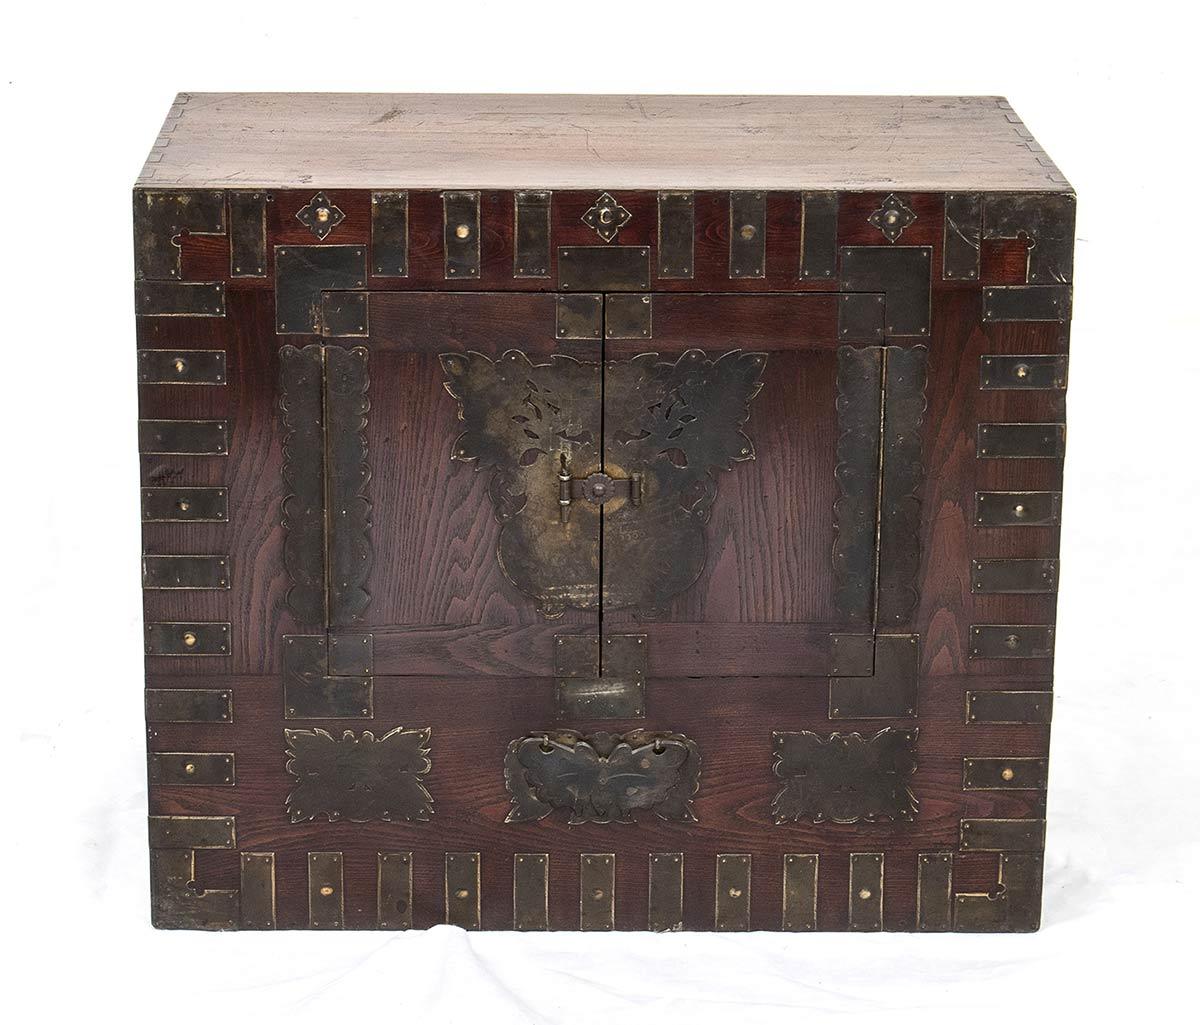 A WOOD AND METAL CHEST, BANDAJIKorea, 19th-20th century